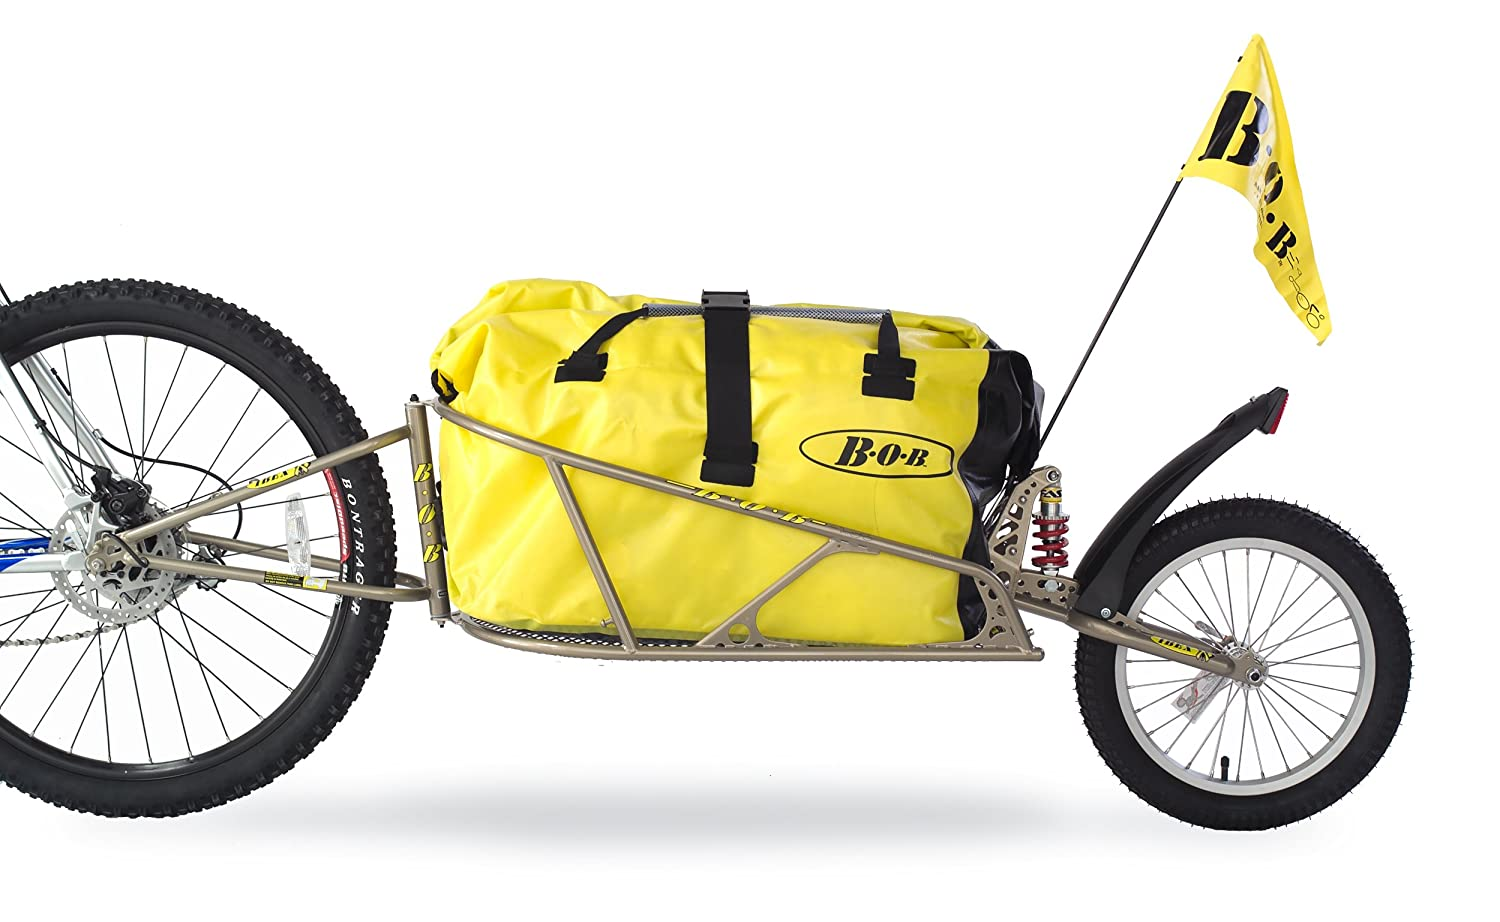 Bob Ibex Bike Trailer With Bag And Quick Release Clamp - For 28' Wheel, Gold